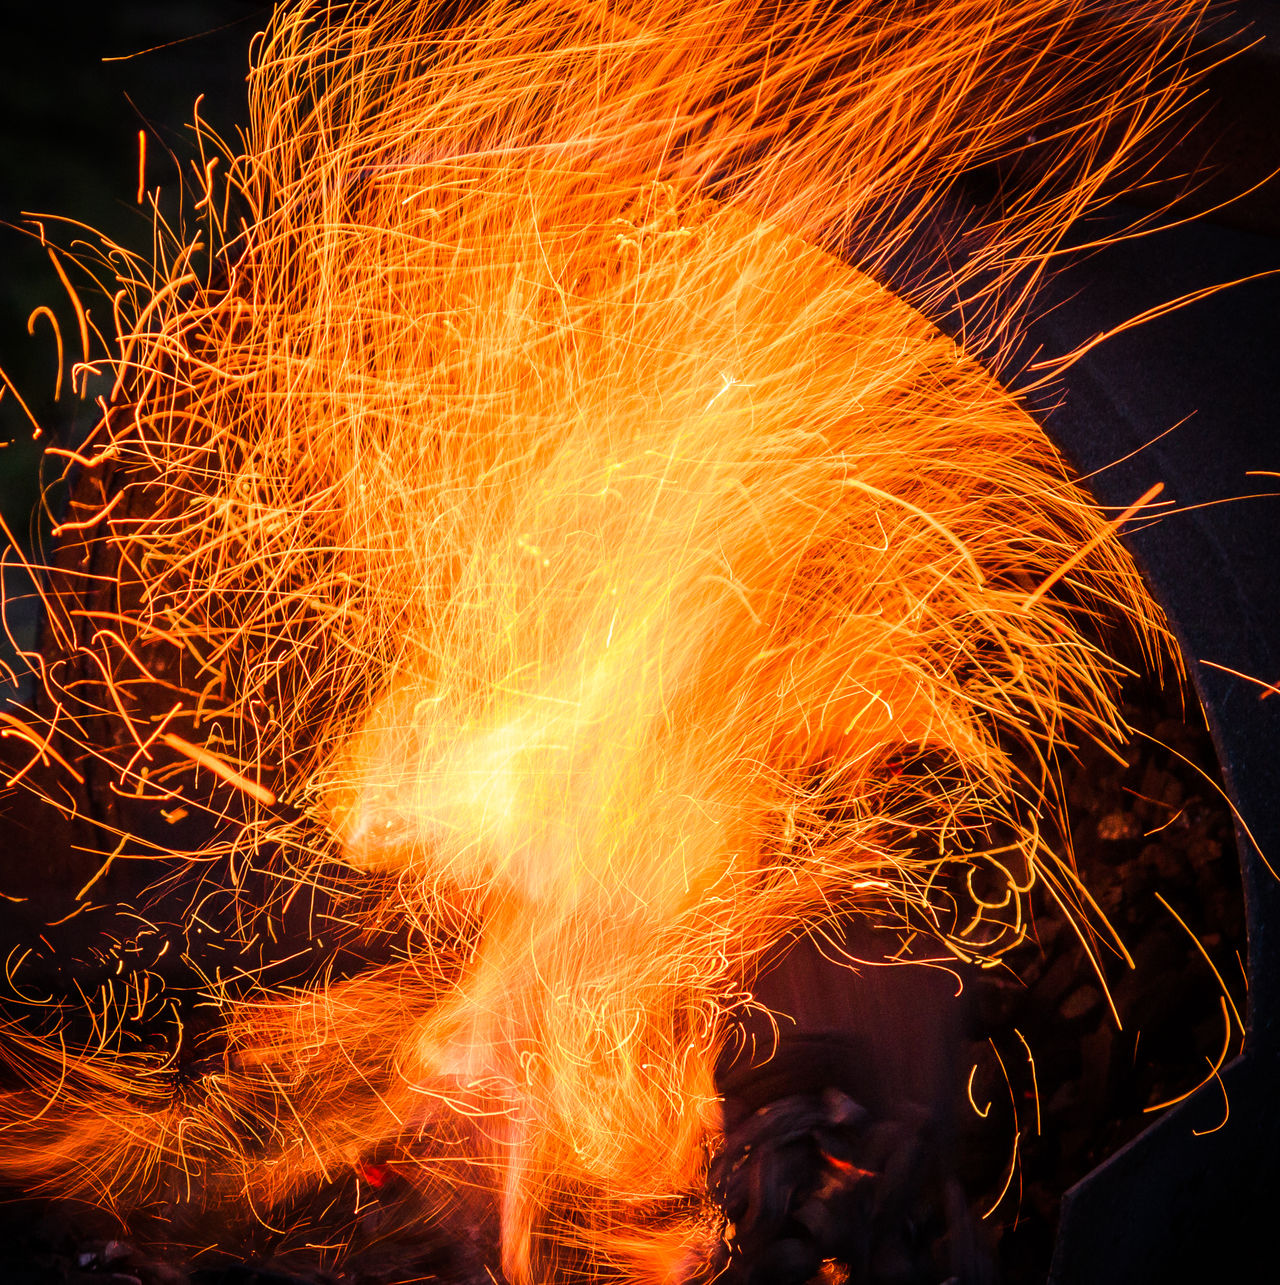 Black Background Close-up Fire Flame Heat Illuminated Indoors  Long Exposure Motion Night No People Sparks Sparks Fly Sparks Flying